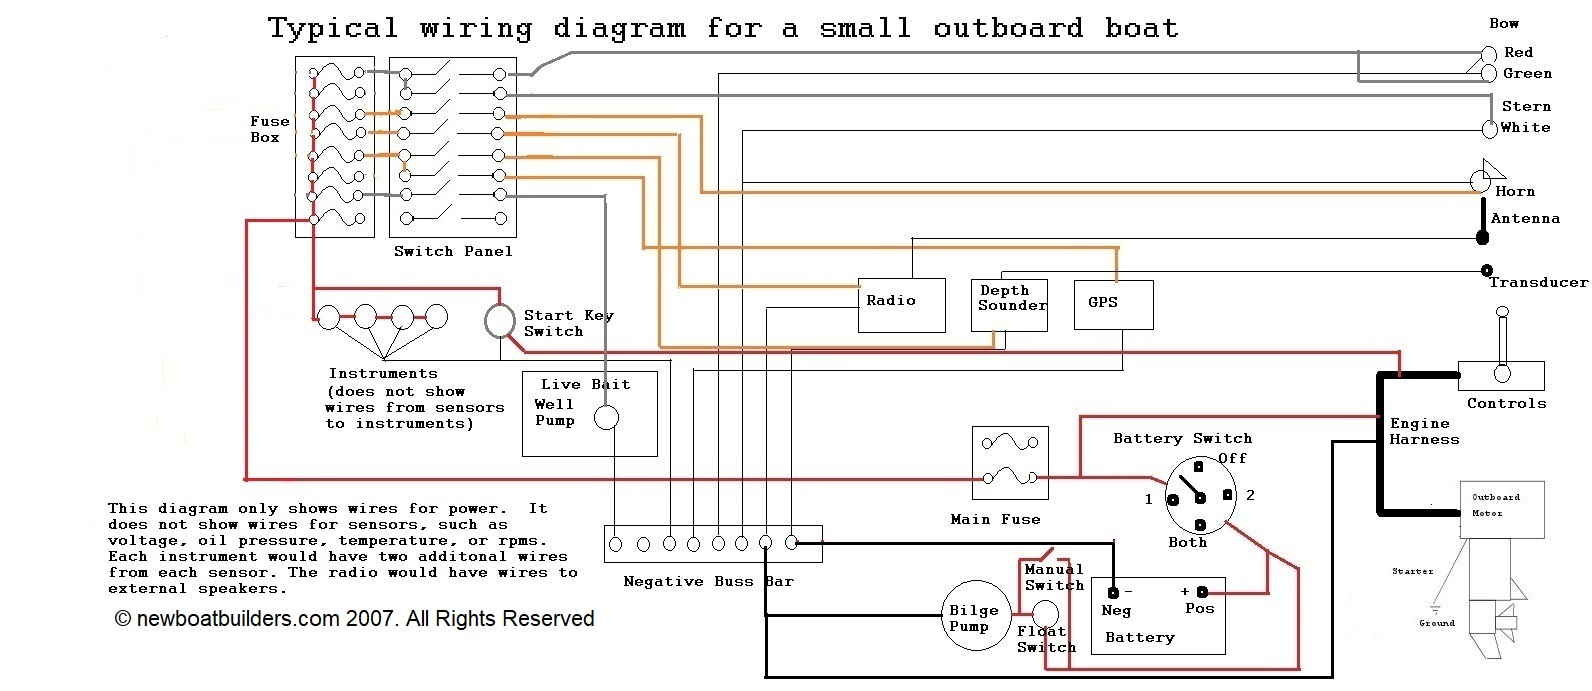 boat wiring diagram pdf boat wiring diagrams online wiring diagram ·